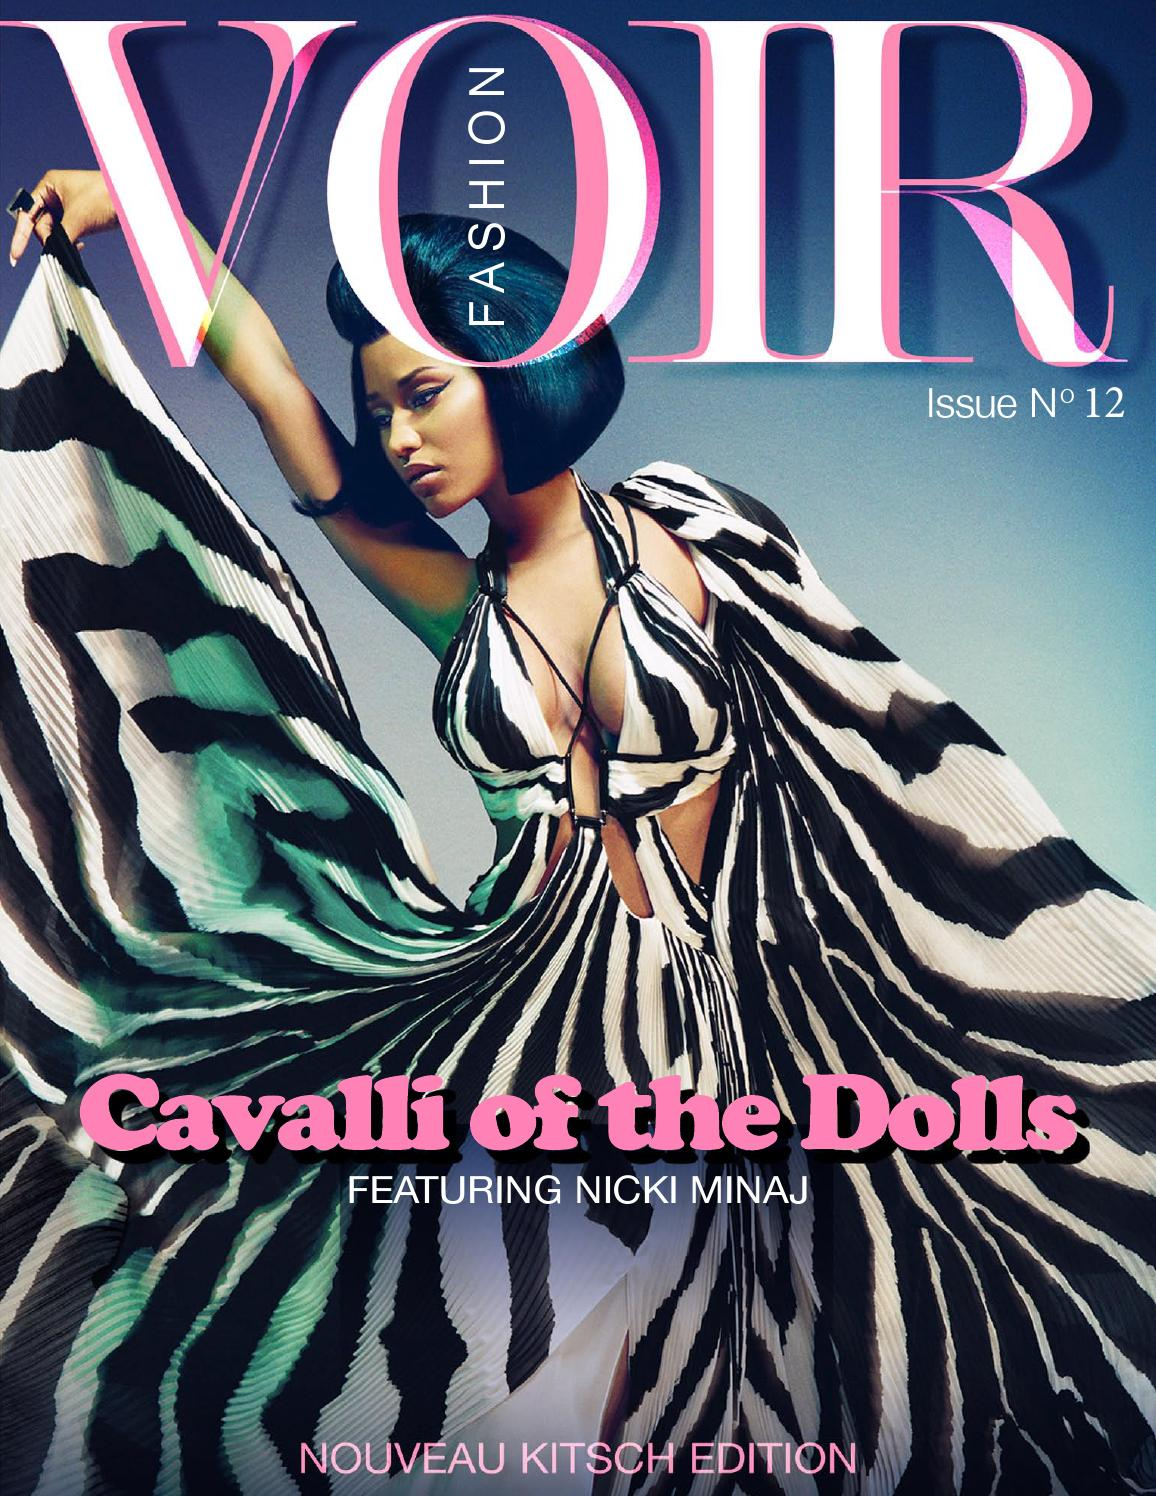 Voir Fashion Issue 12 : Cavalli Of The Dolls